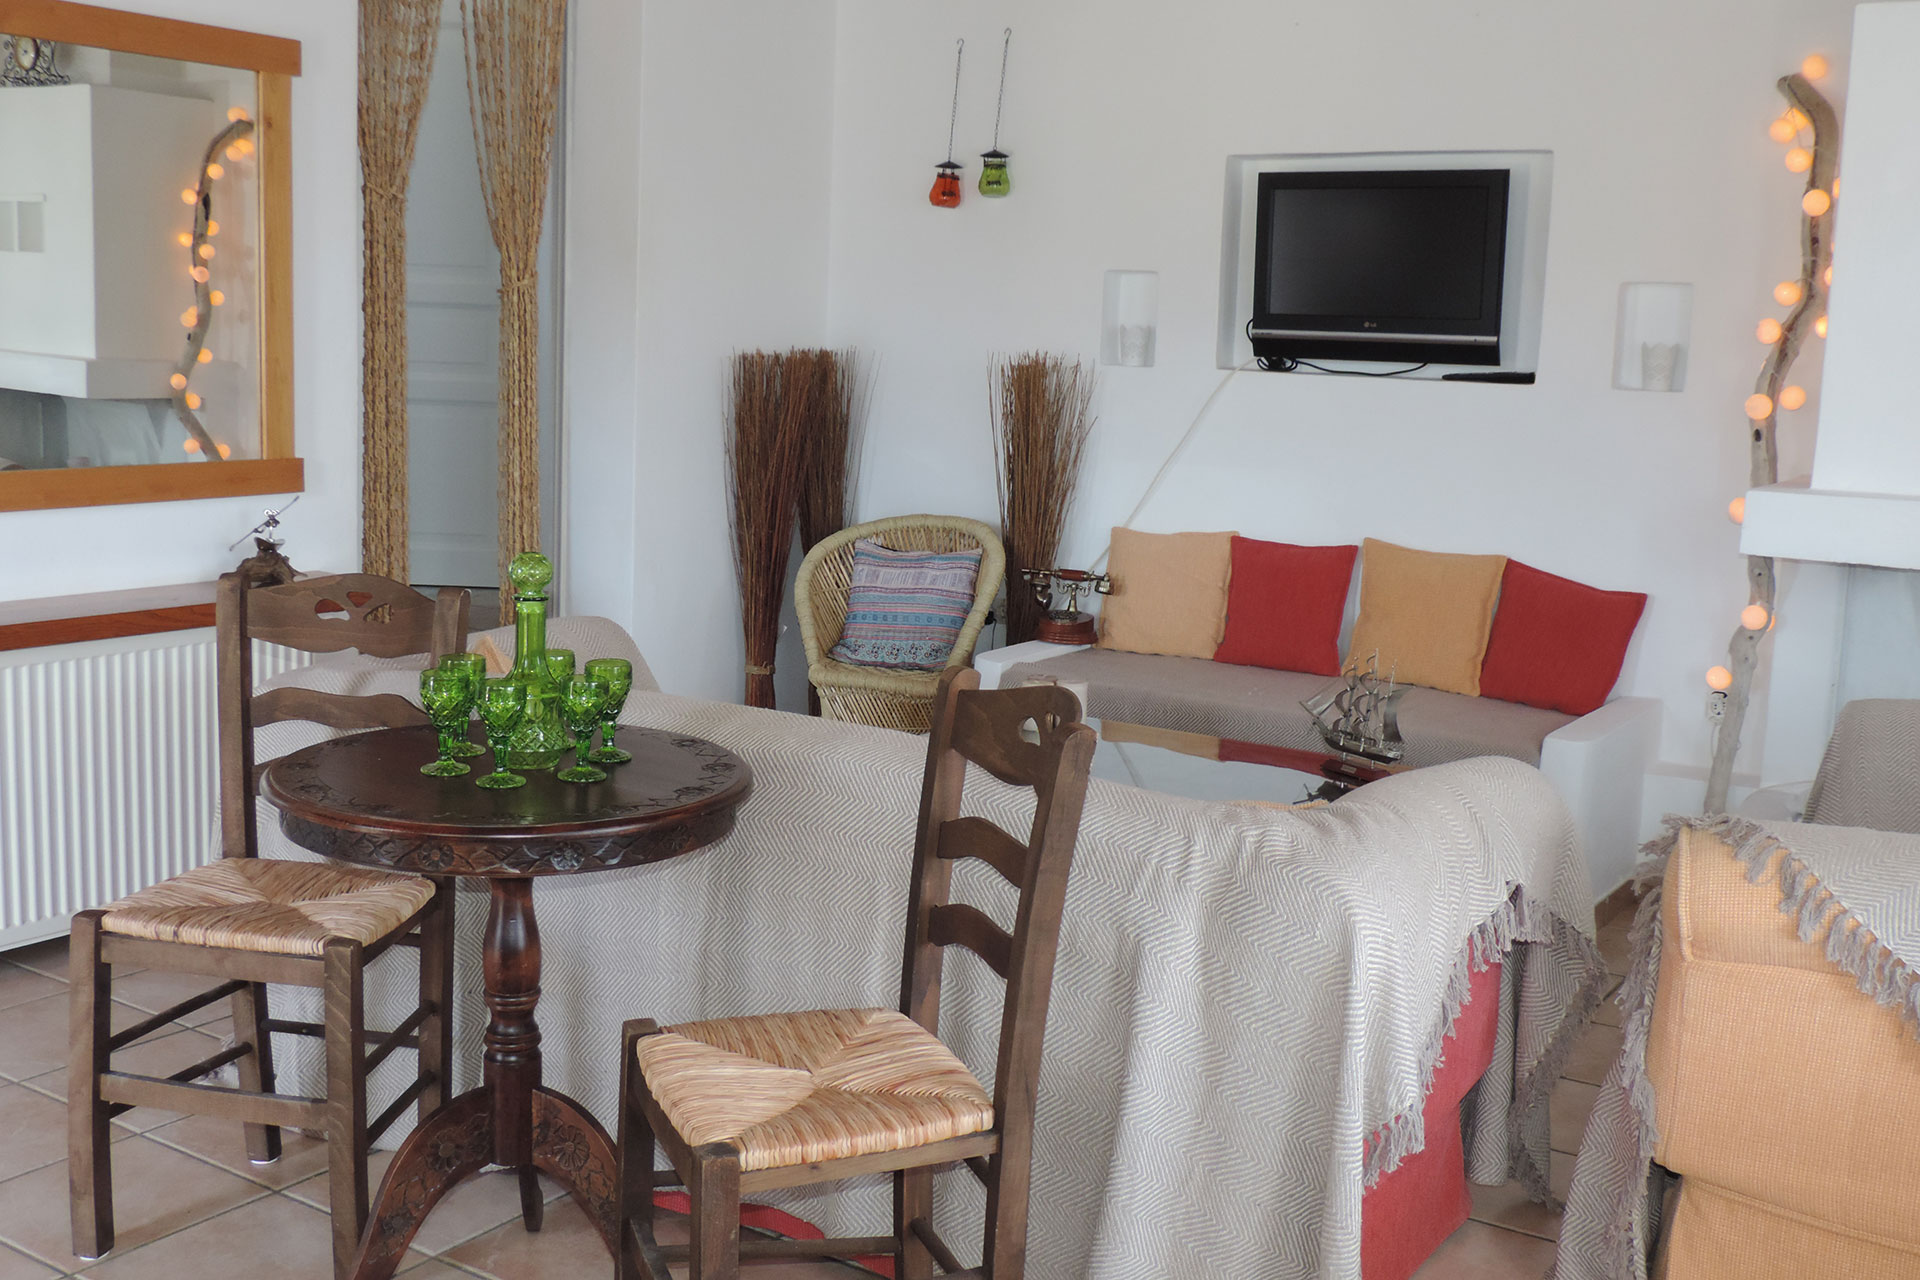 The sitting room of Elia family house at Kavos